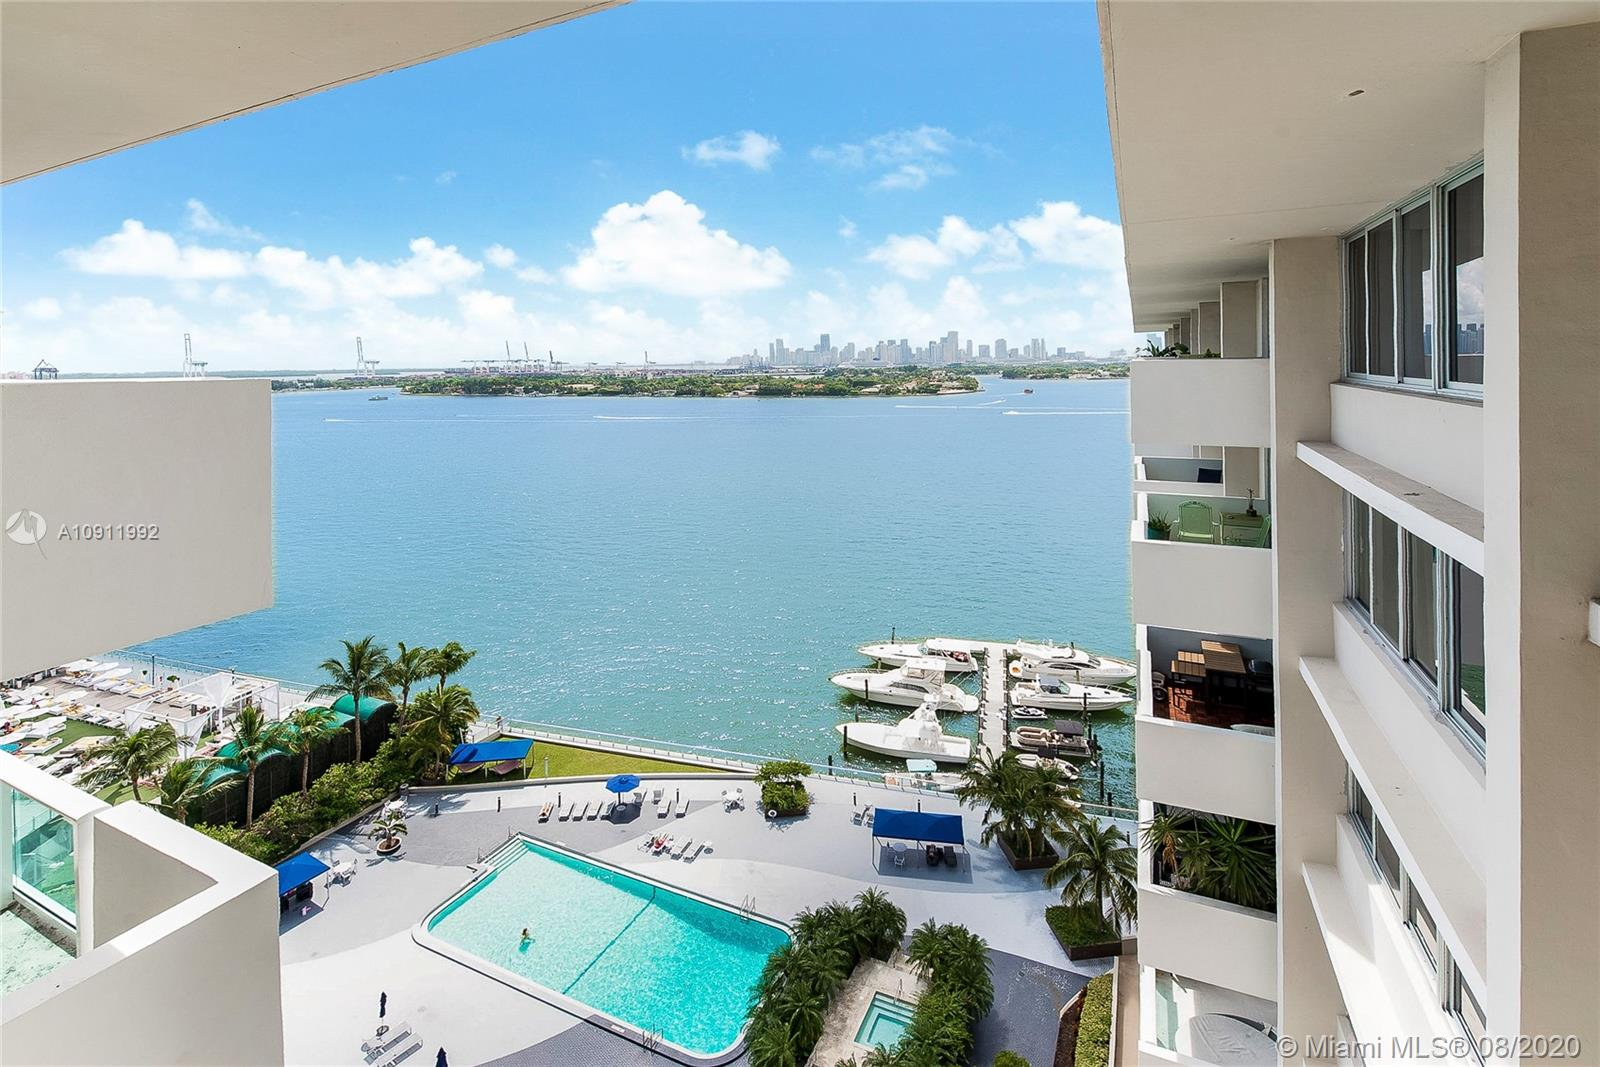 Mirador North #PH-01 - 1200 West Ave #PH-01, Miami Beach, FL 33139